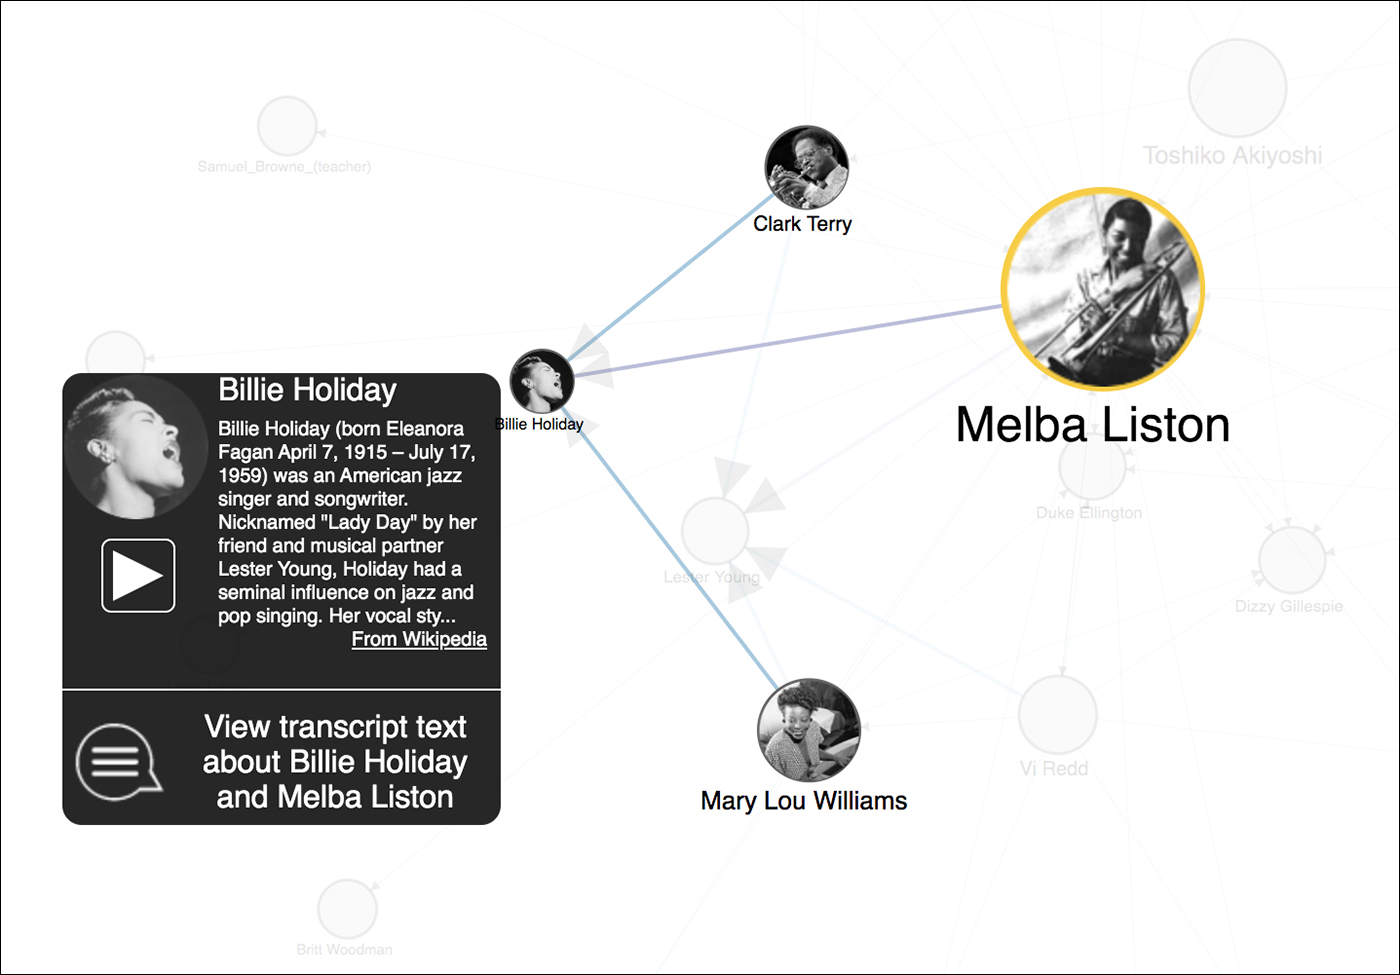 Exploring the connections for Melba Liston on Linked Jazz (courtesy Linked Jazz